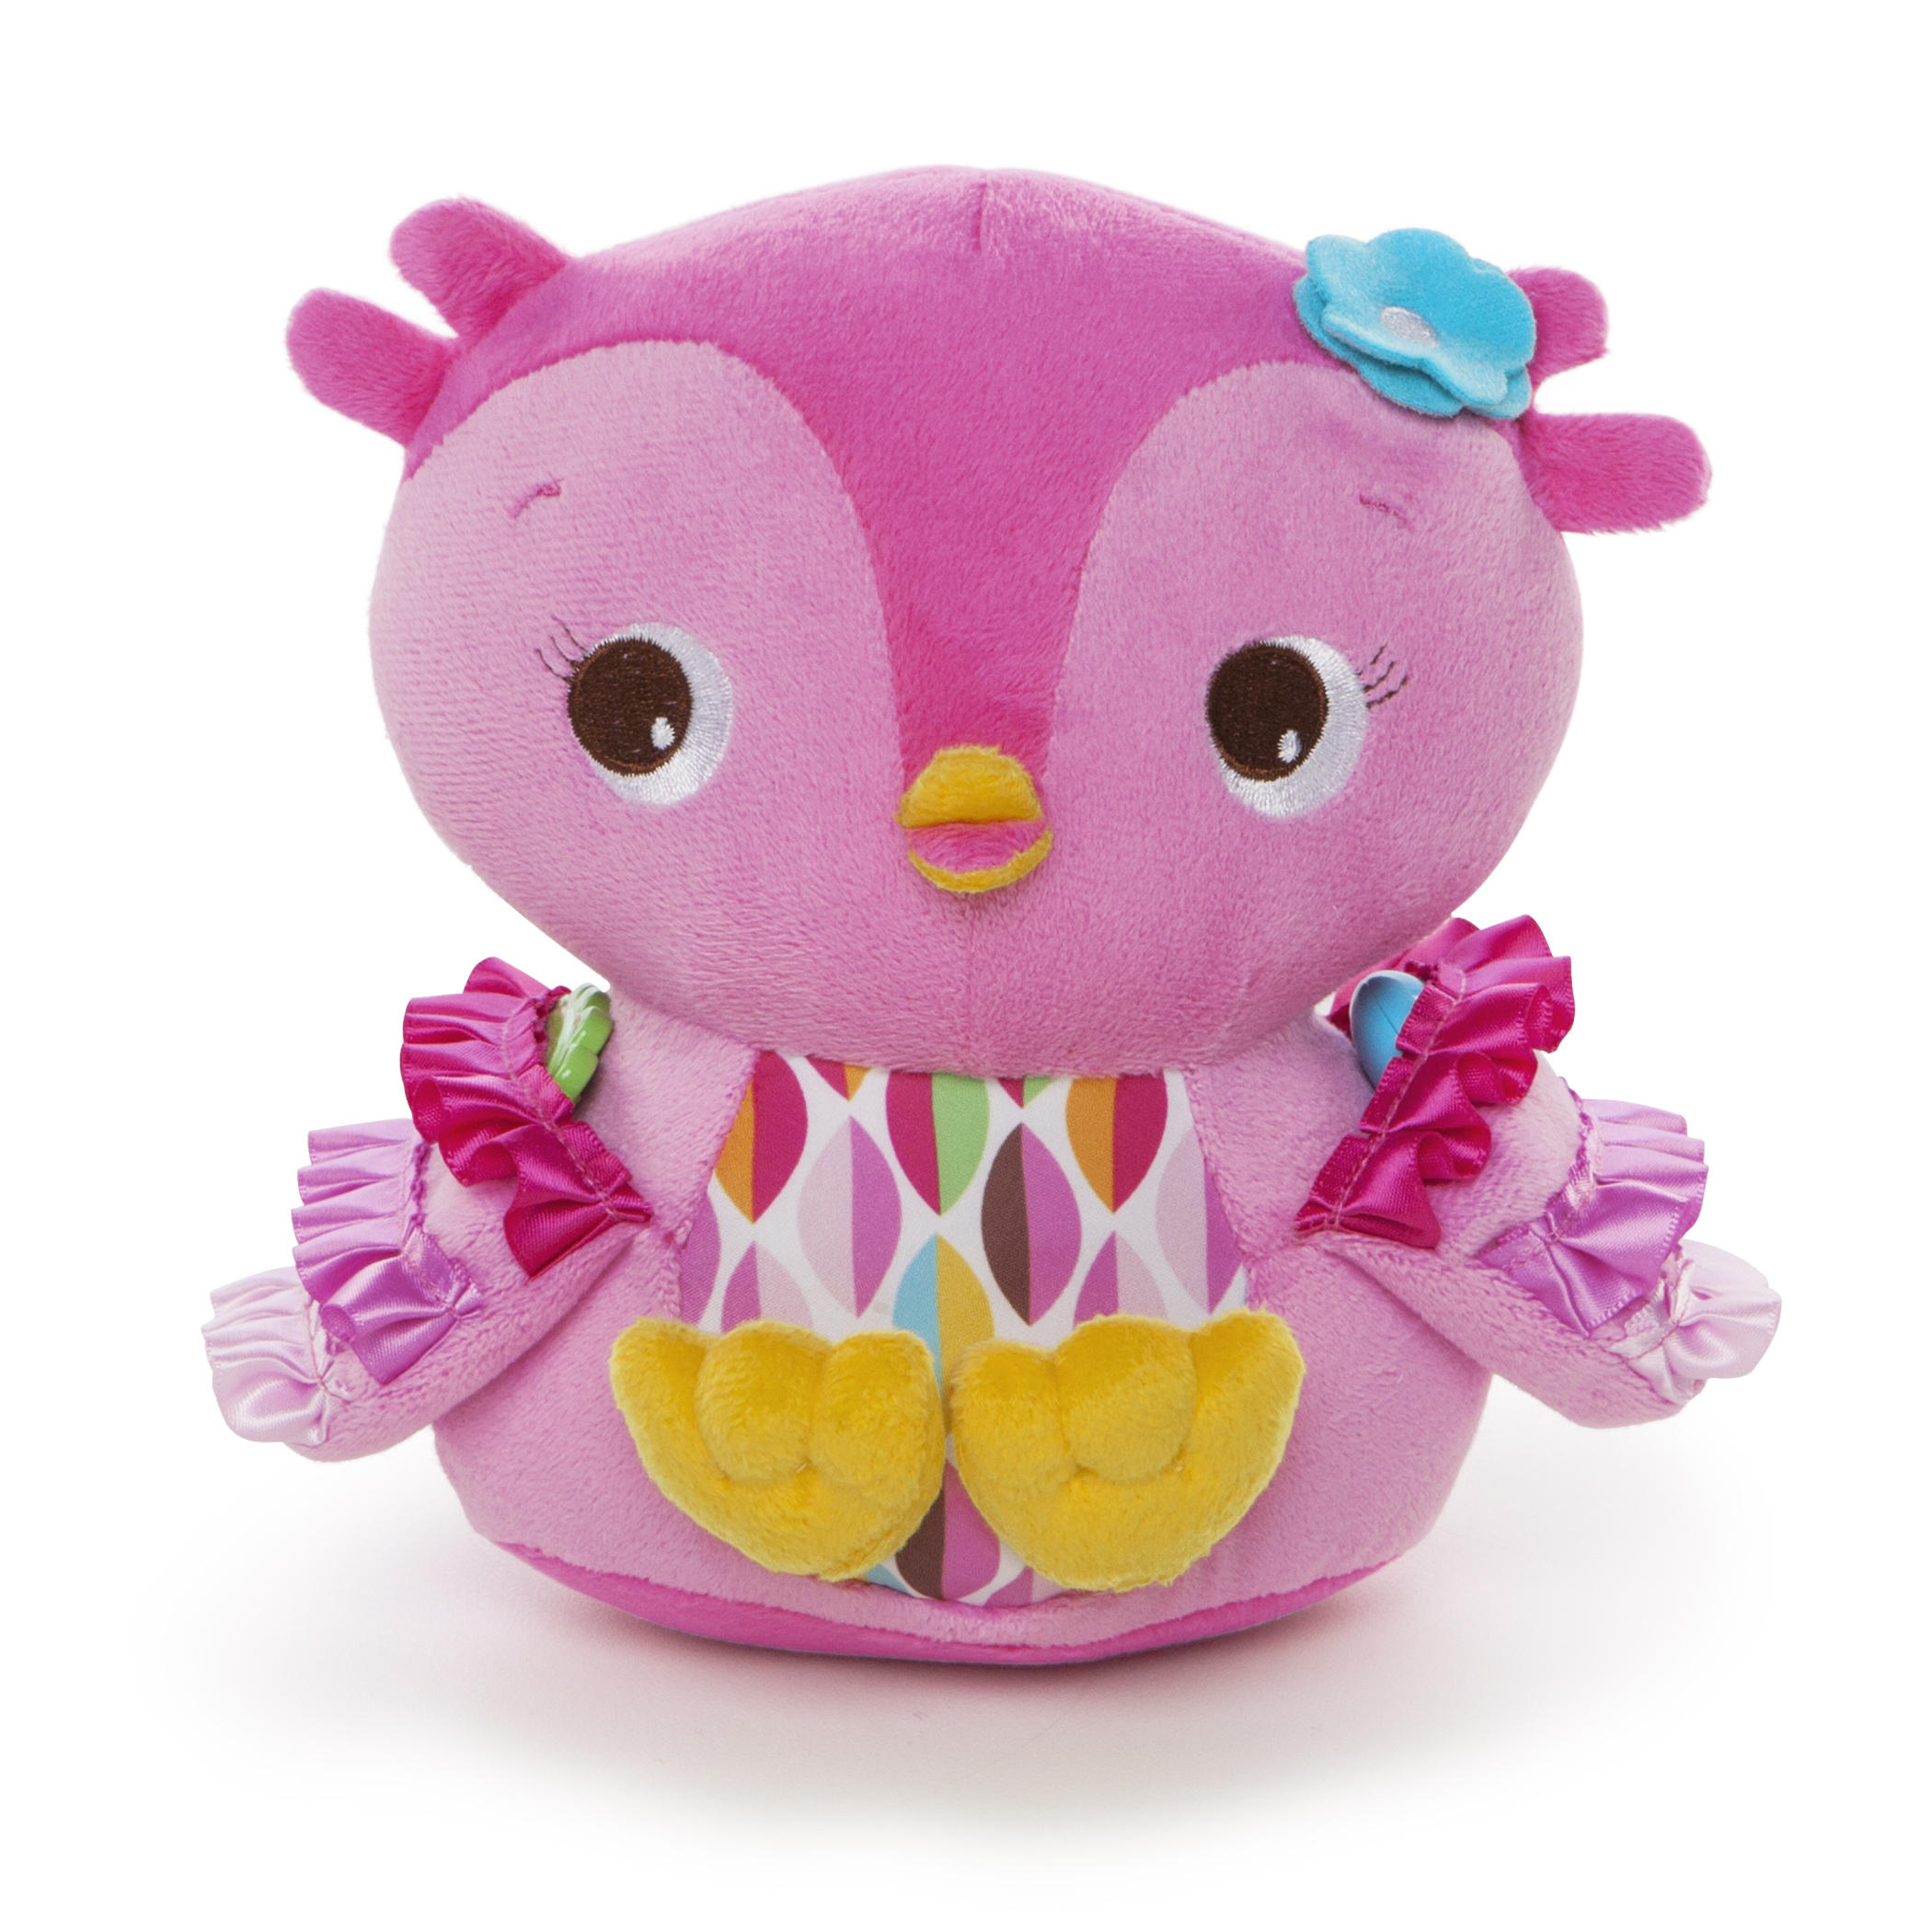 Bright Starts Hootie Cutie Plush Toy